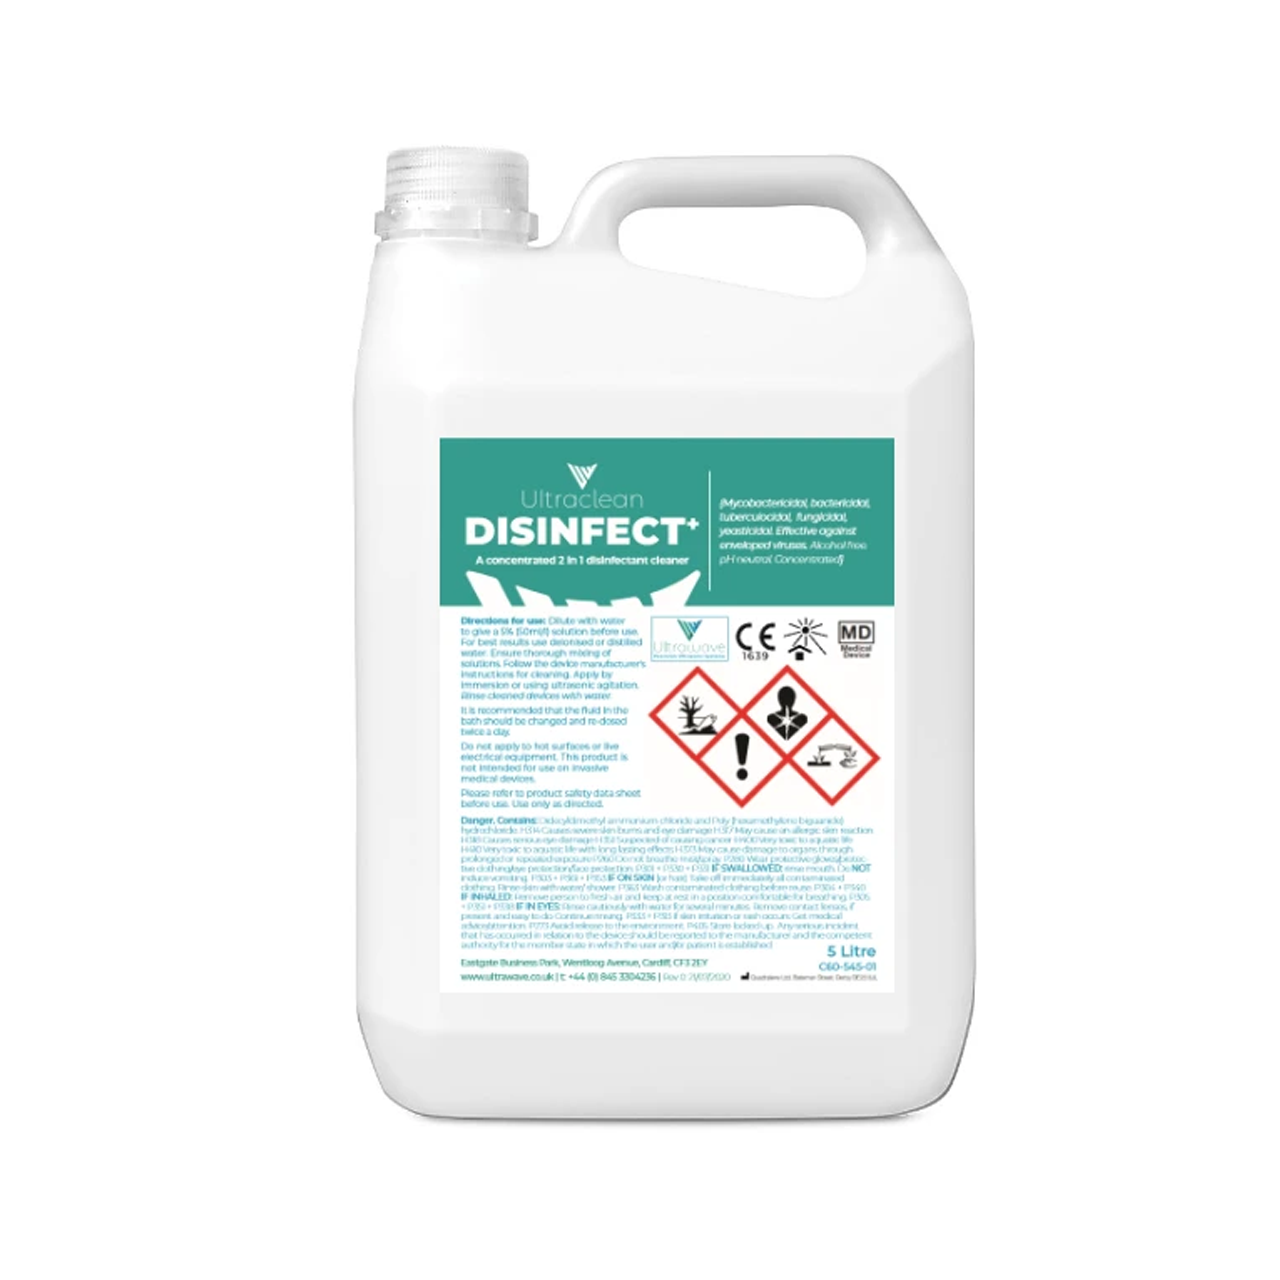 Ultraclean Disinfect+ Product Image